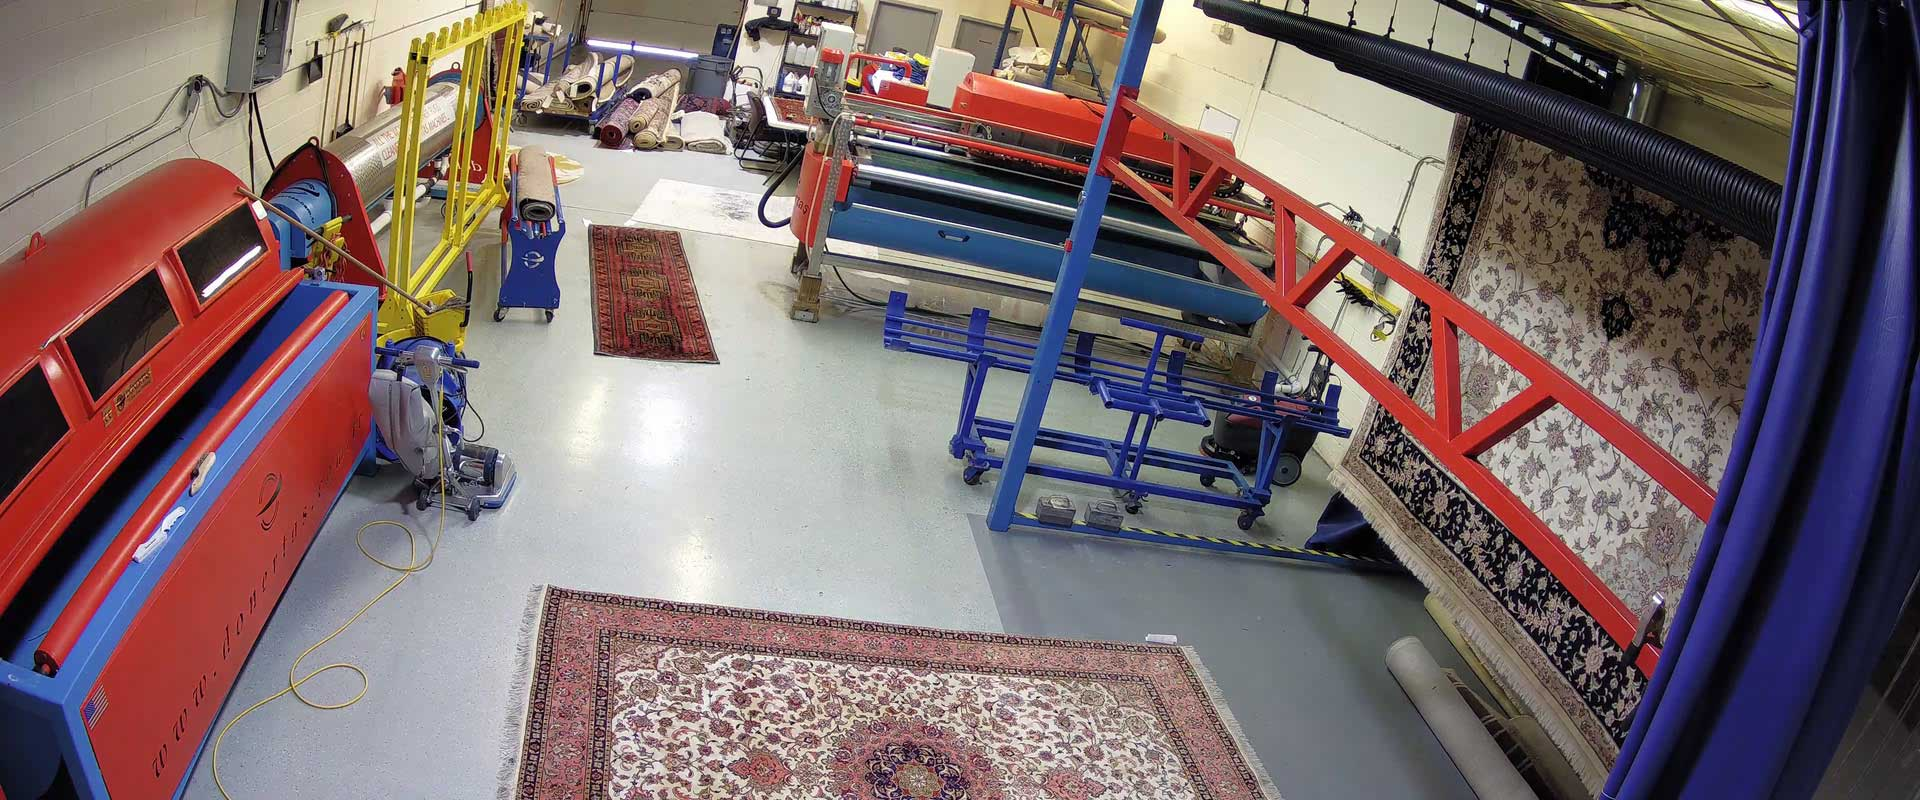 rug_cleaning_warehouse